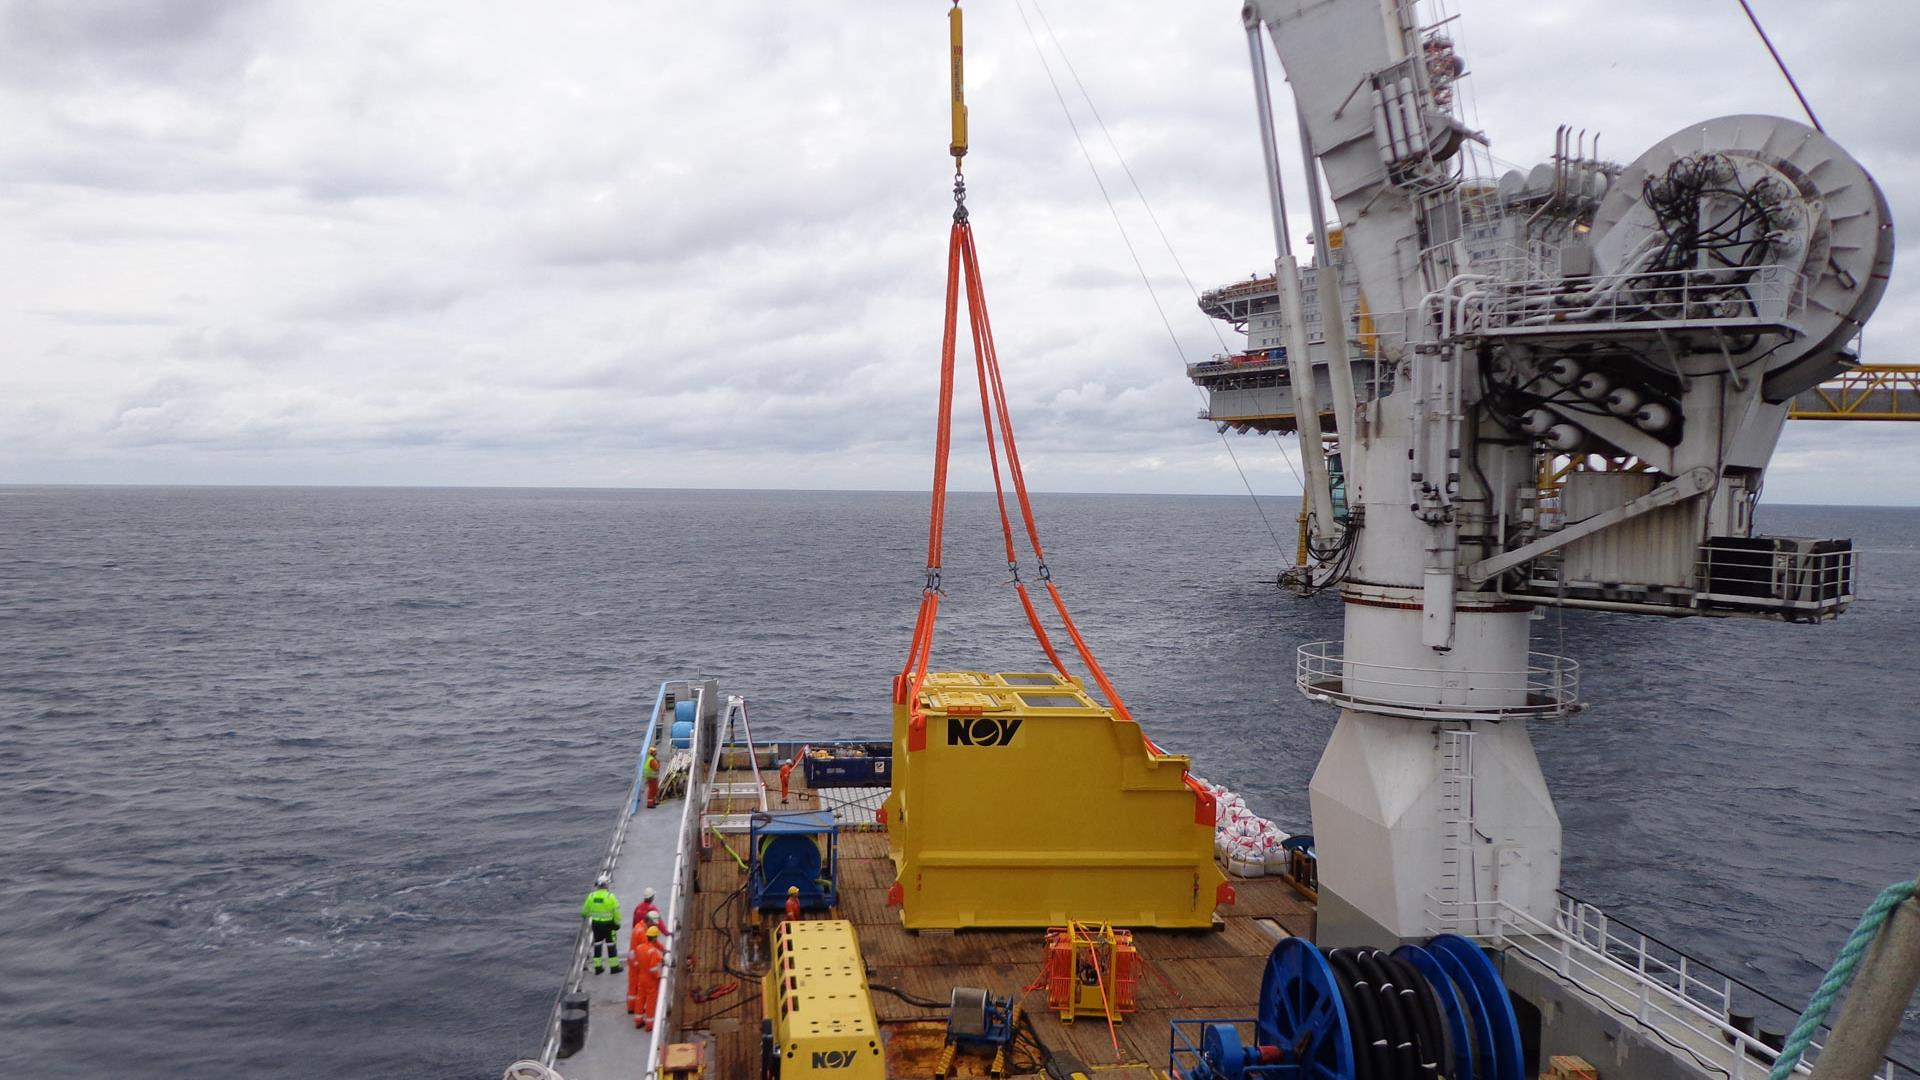 Seabox module on offshore platform preparing for installation subsea